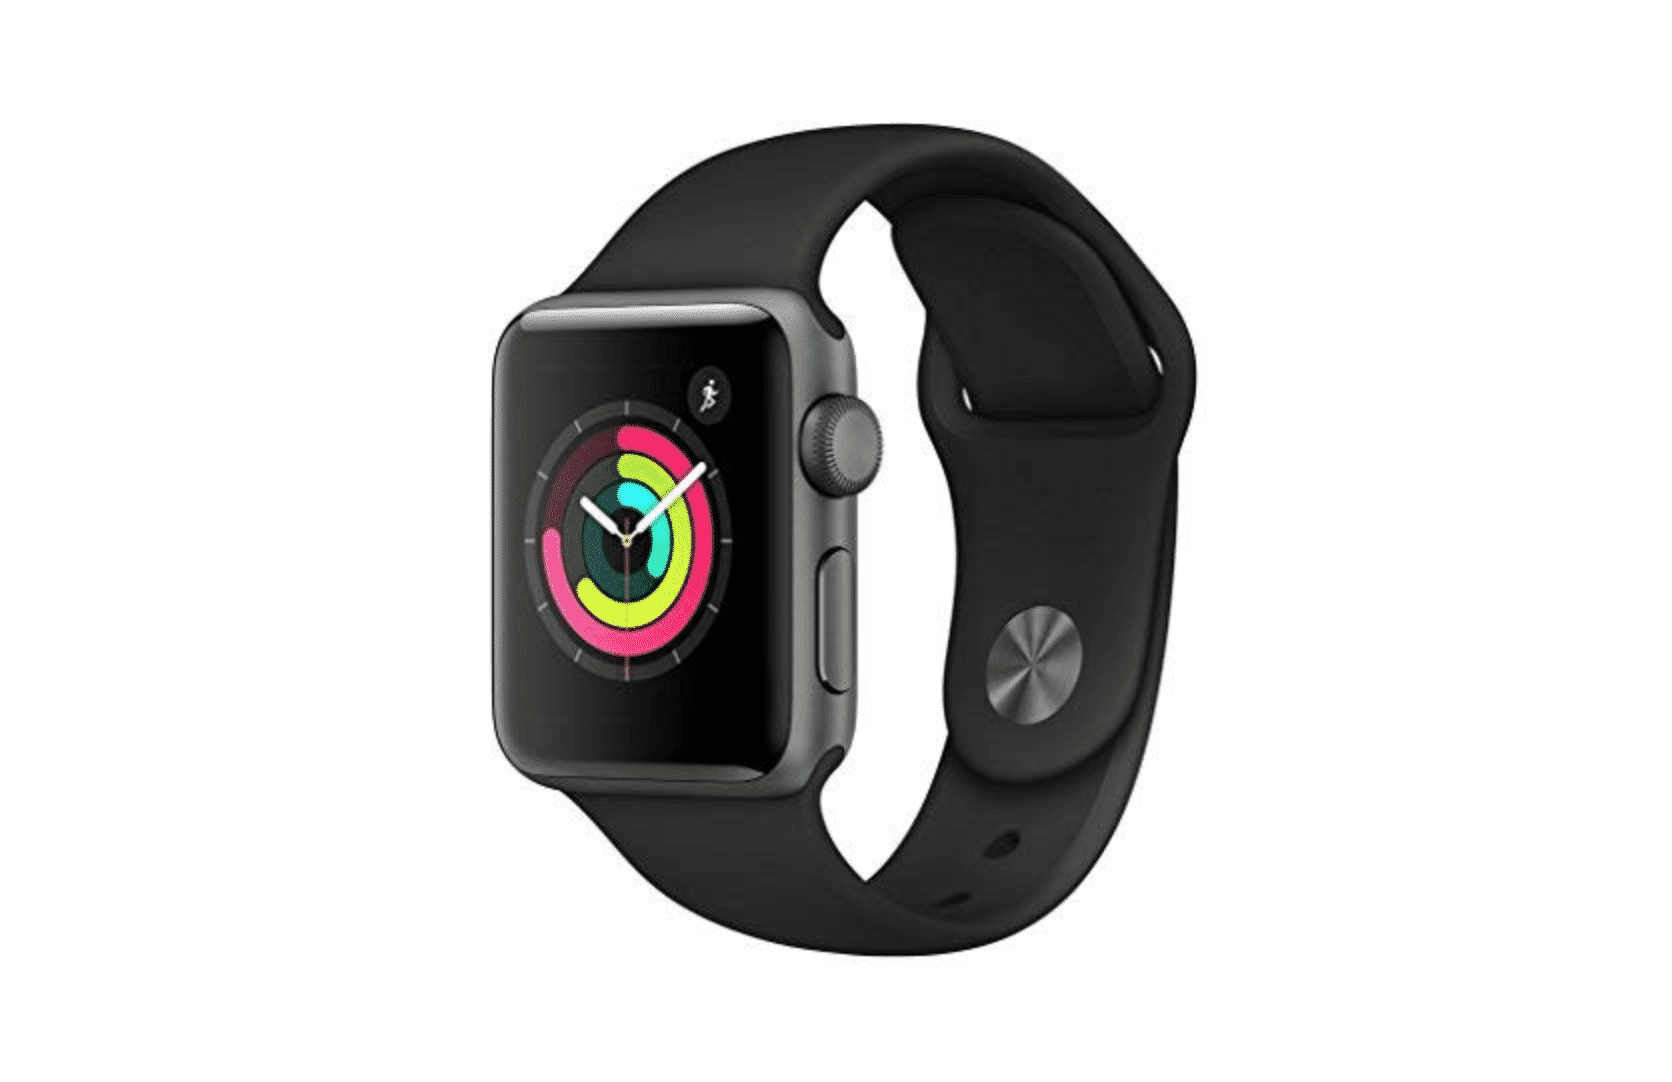 Apple Watch 3 Now Just $189 on Amazon